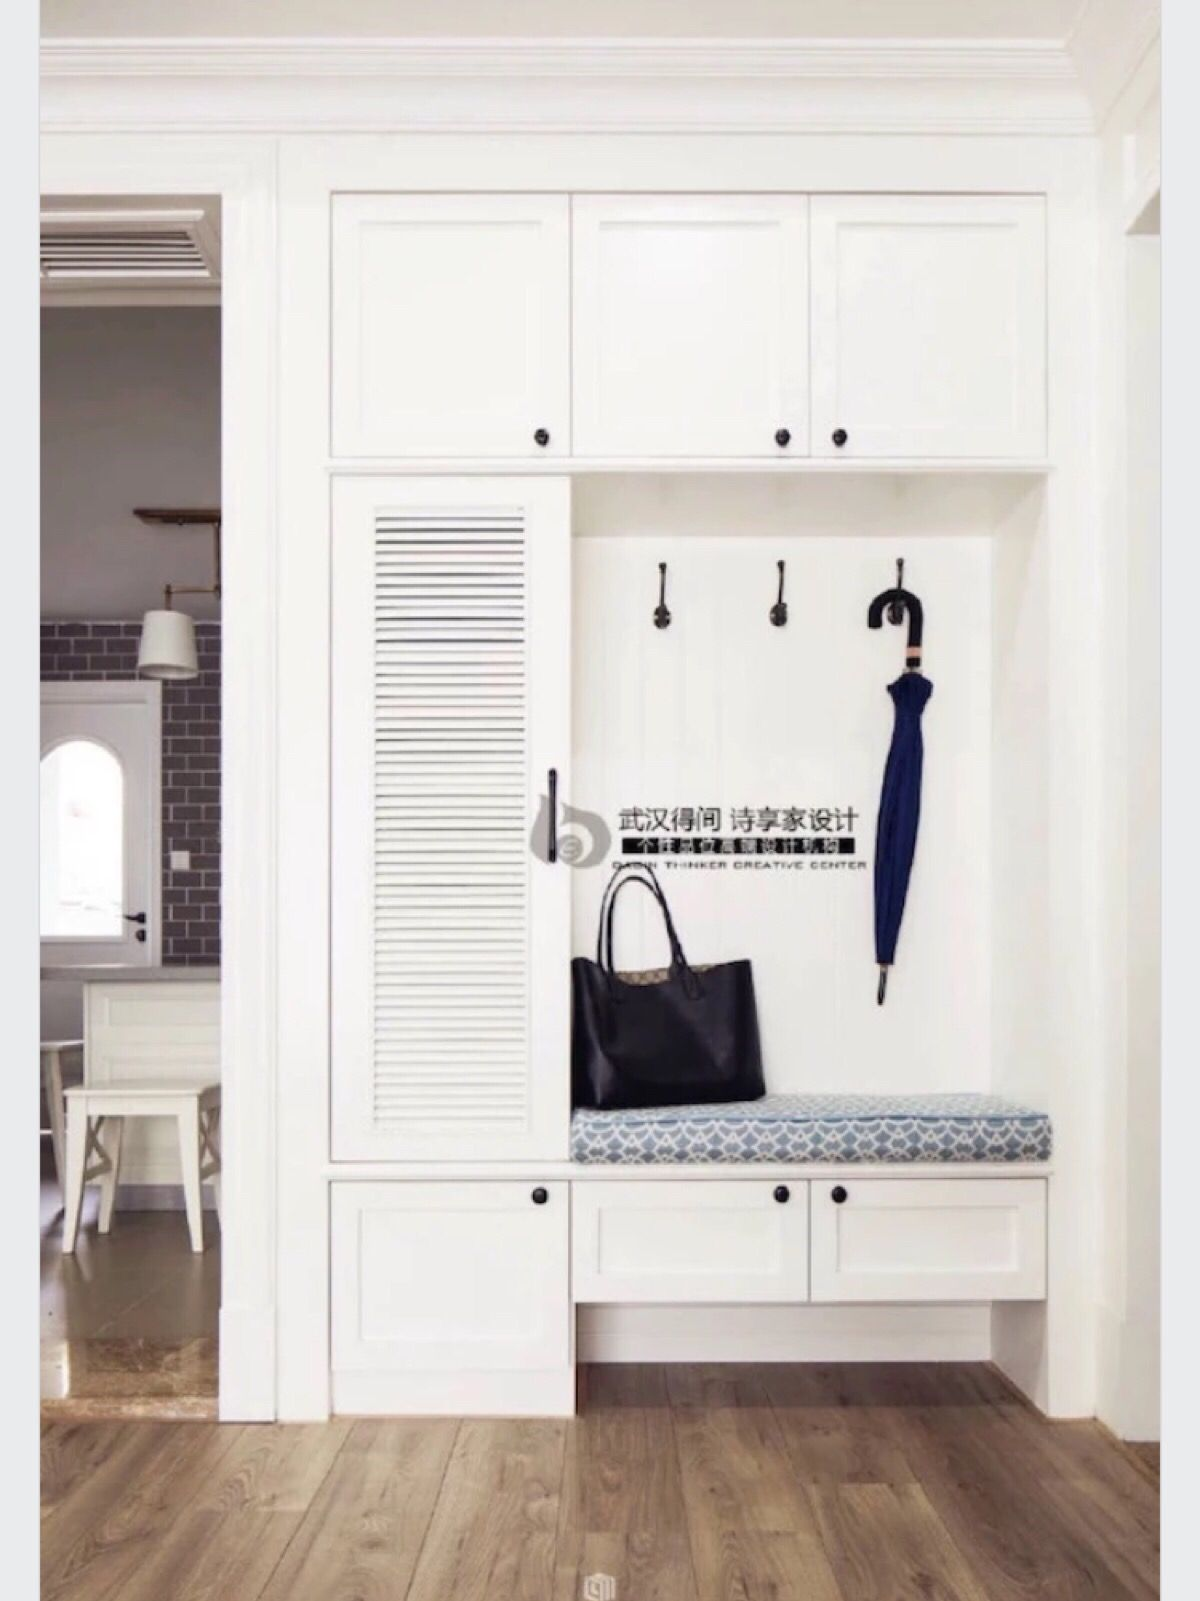 Hallway cabinet decor  Pin by Dana Cheng on Shoes cabinet  Pinterest  Hall Interiors and